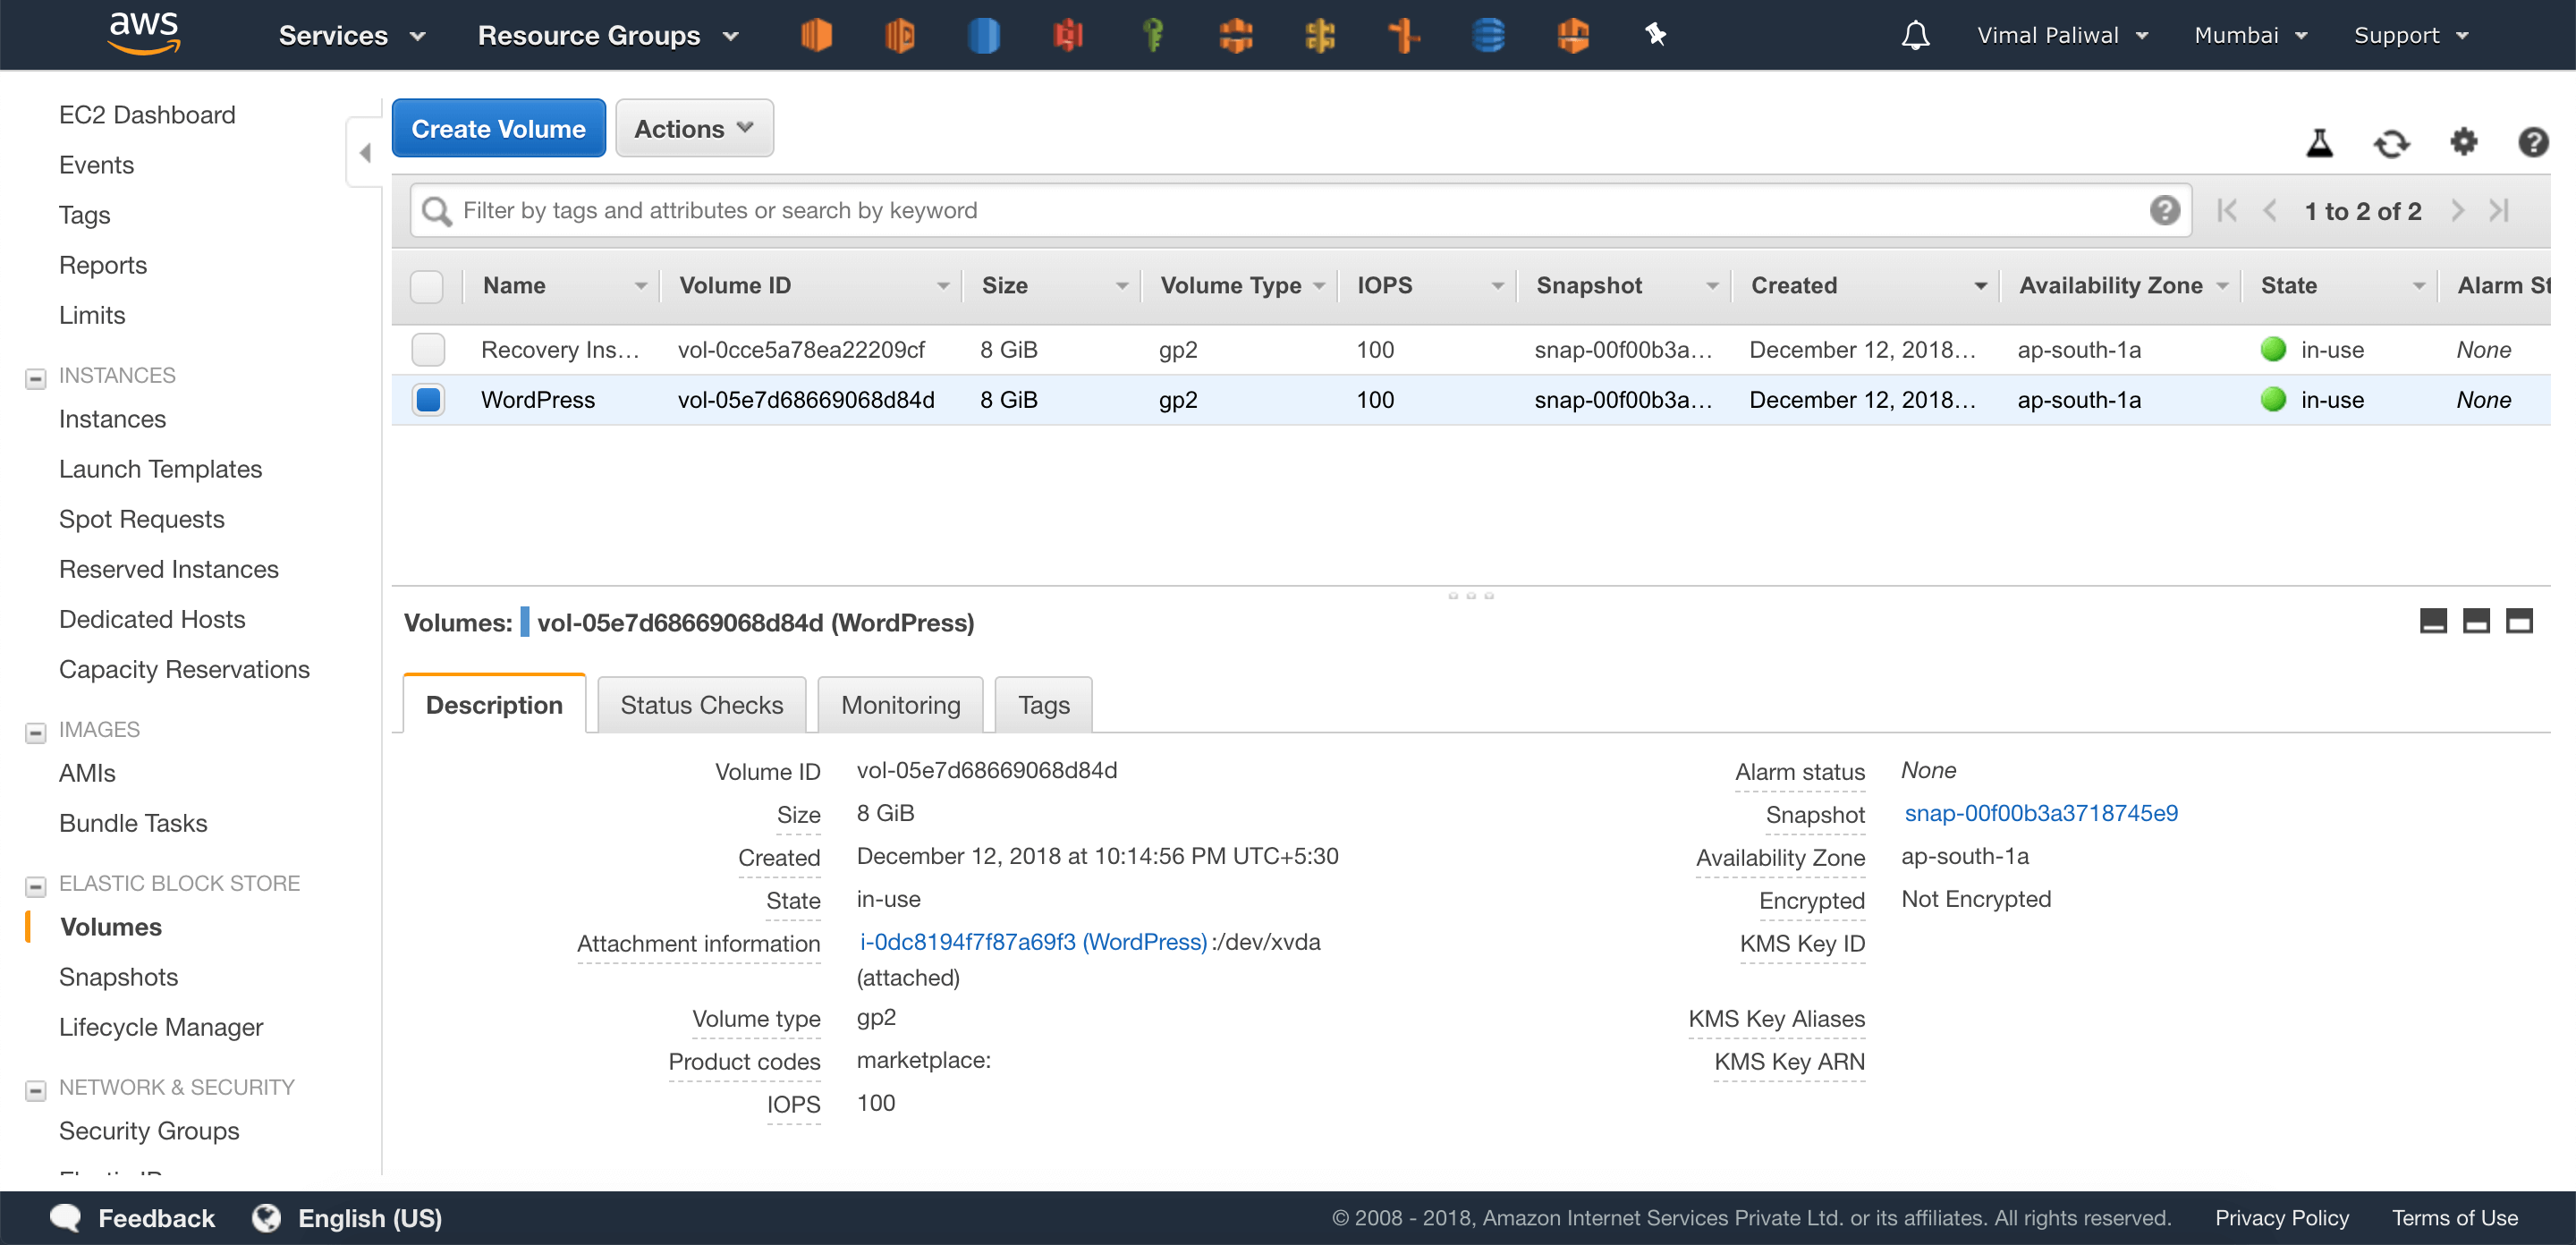 Linux] 3 ways to regain access to AWS EC2 instance in case